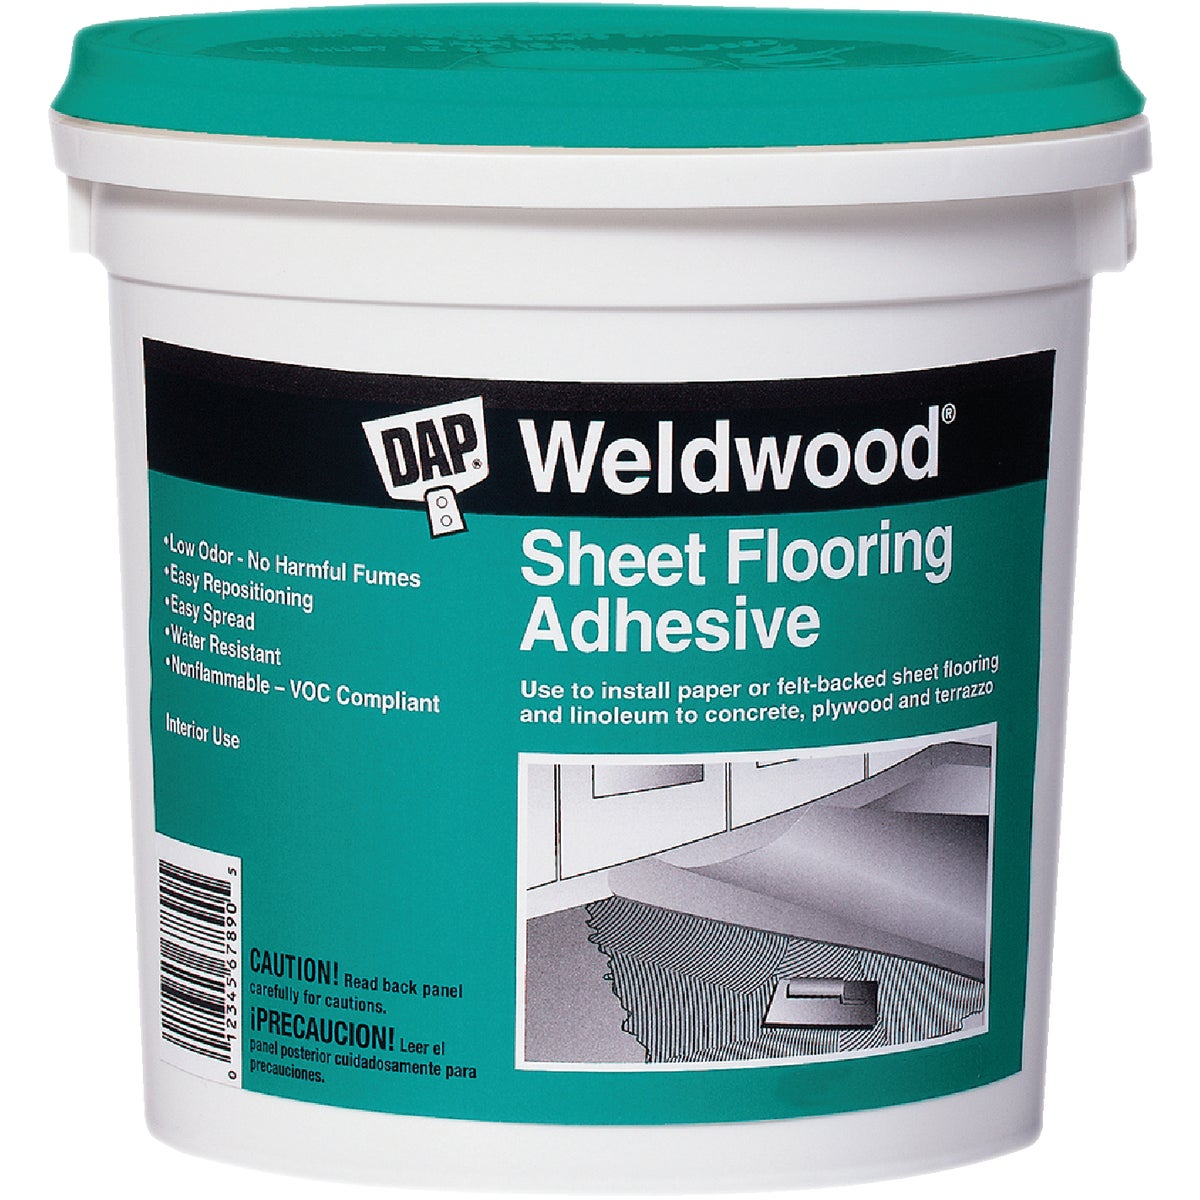 QT SHEET FLOOR ADHESIVE - 25176 by Dap Inc